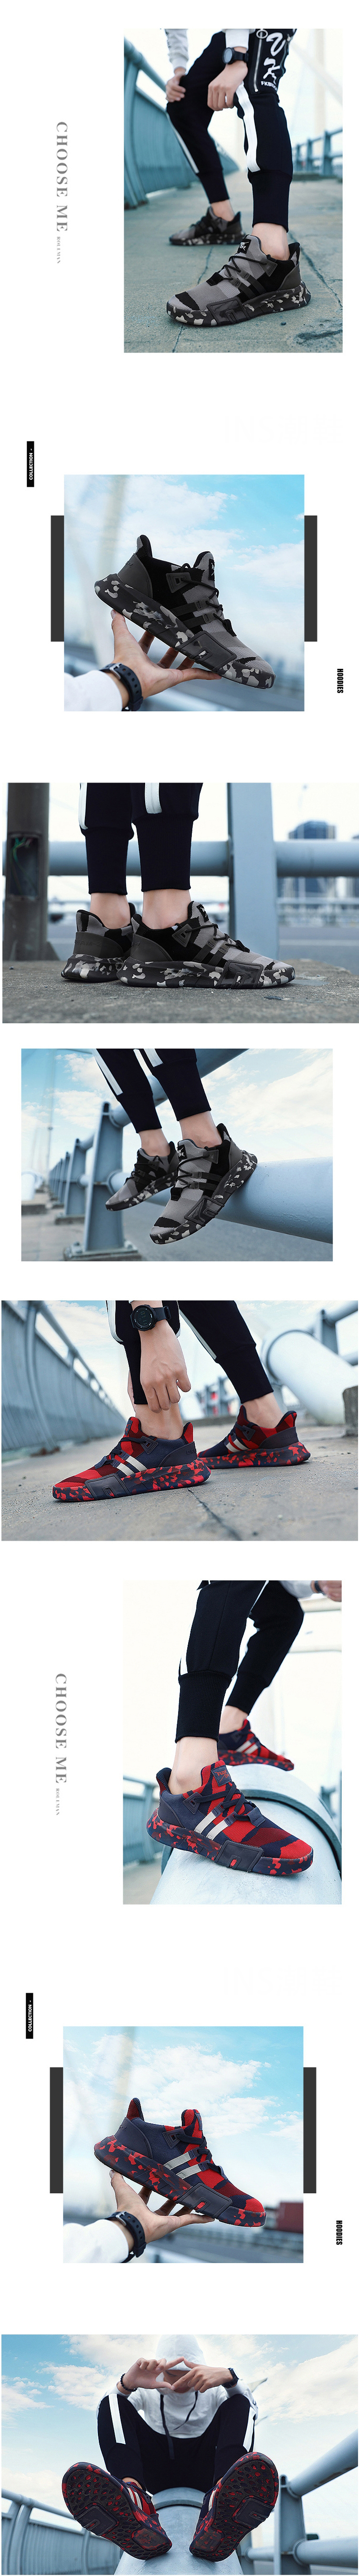 TENGOO Fly Knit Men Sneakers Ultralight Breathable Sports Running Shoes Non-slip Wear Resistance Casual Fashion Shoes